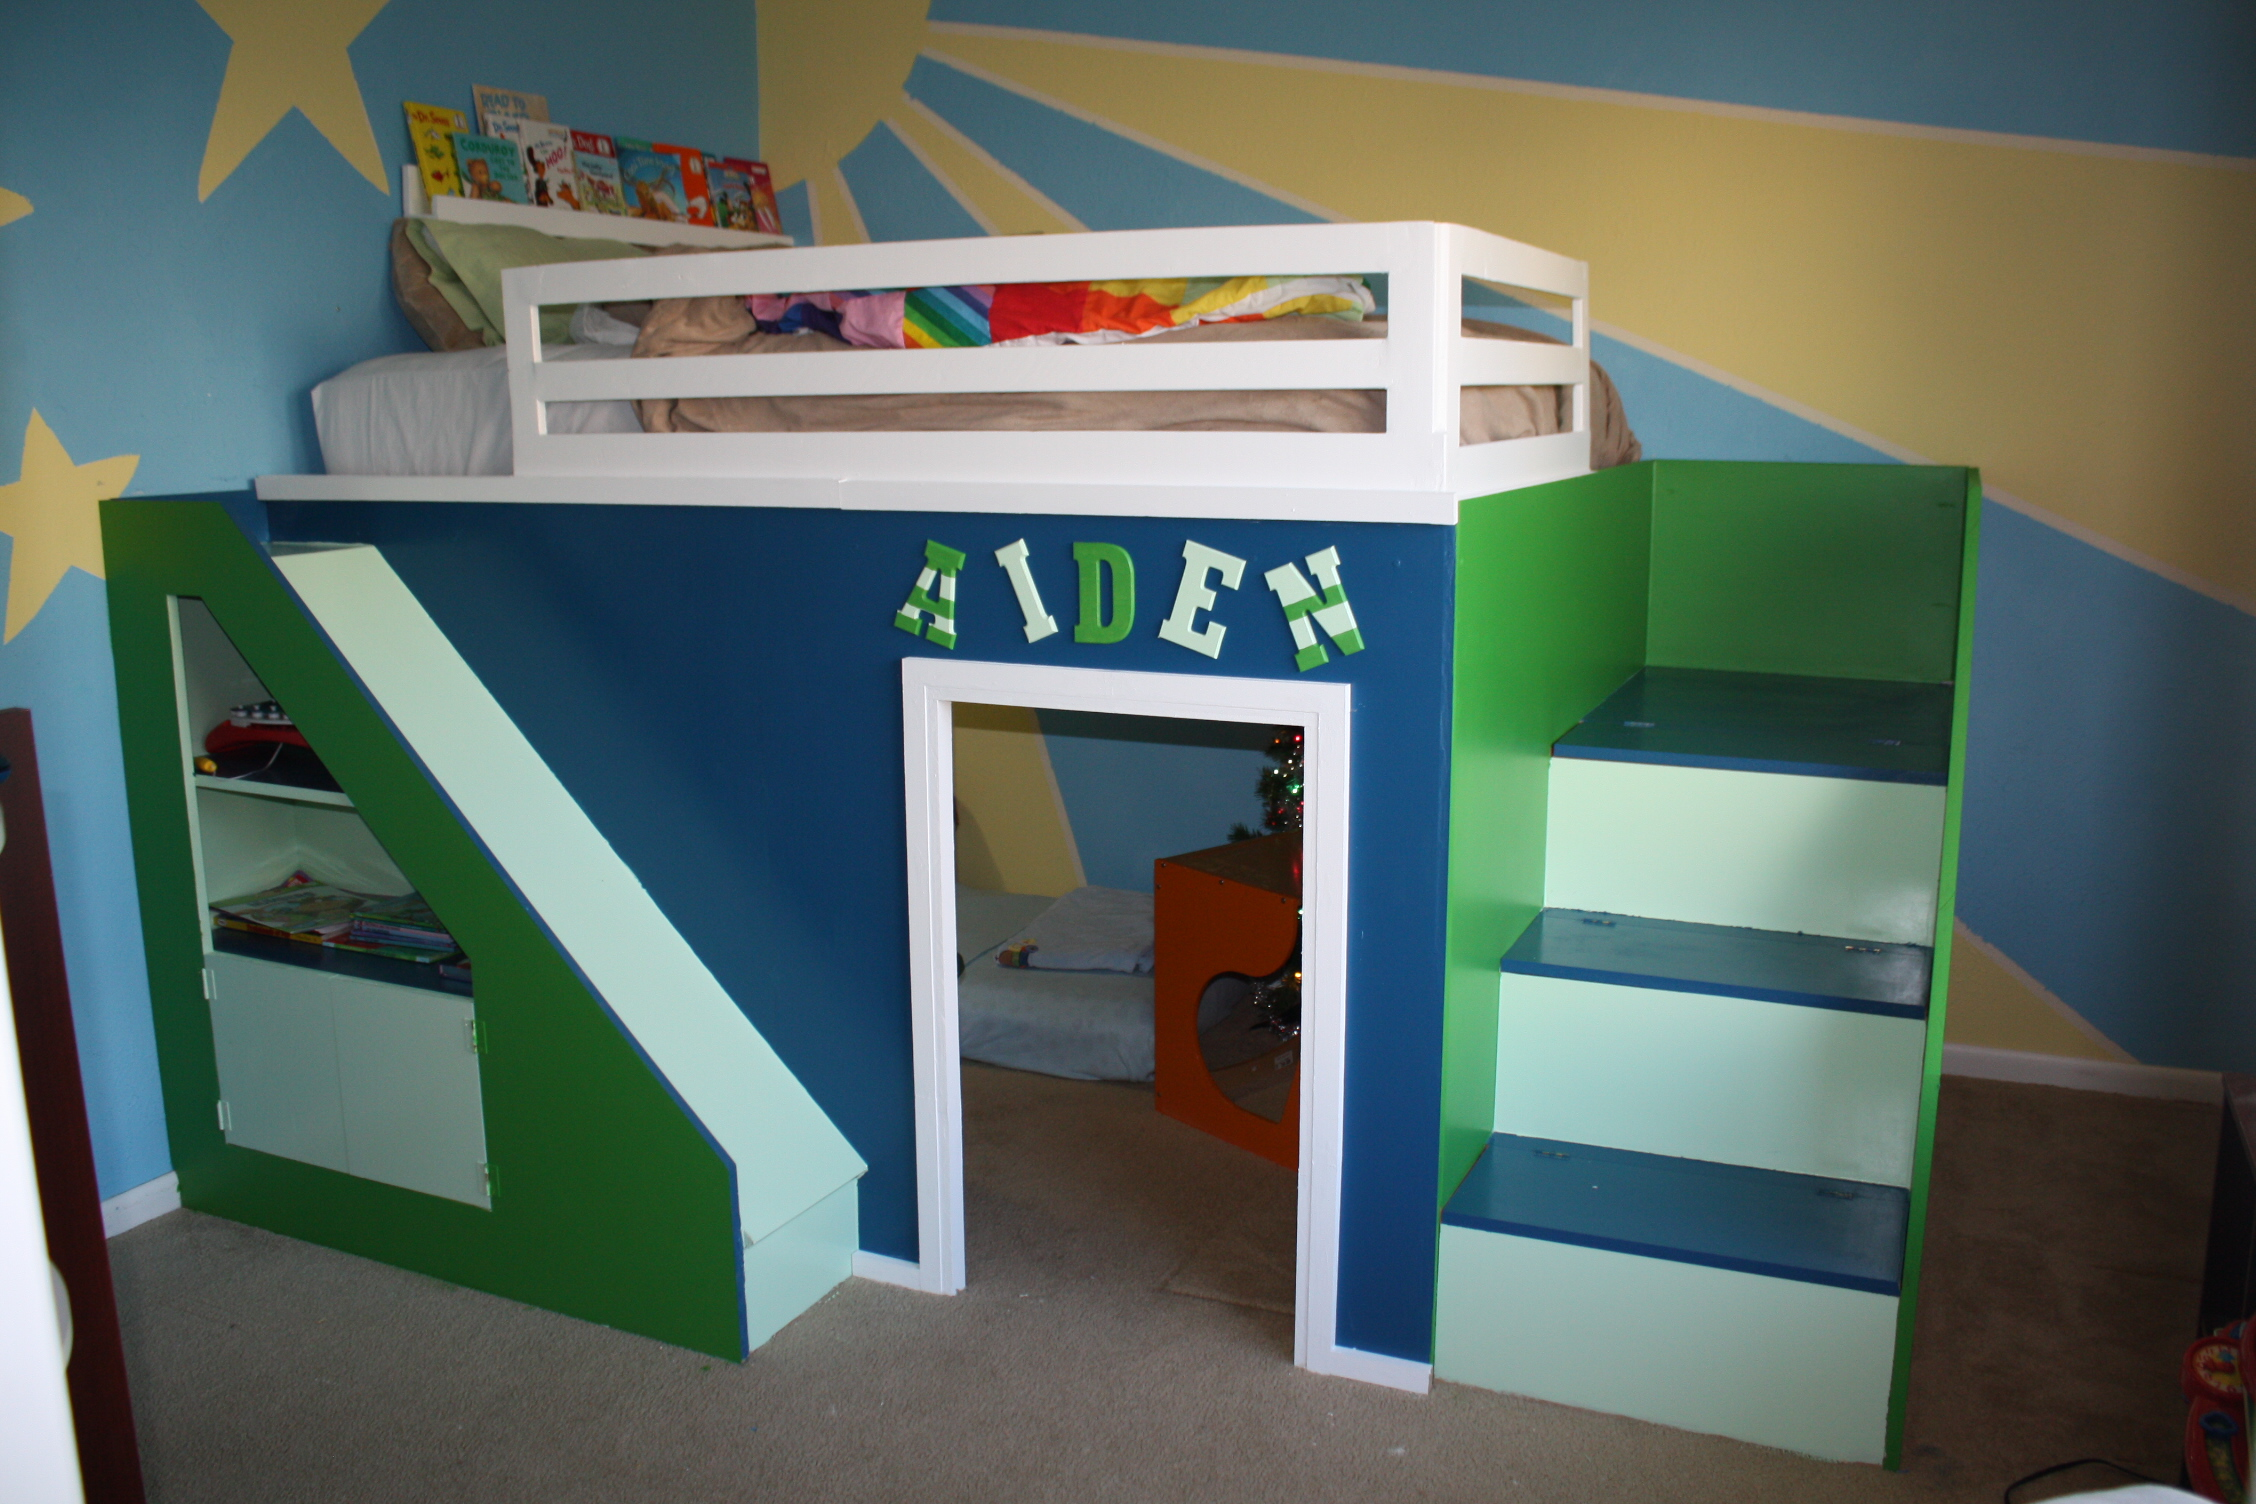 Metal bunk bed with slide - Make Your Own Castle Loft Bed With A Slide I Need To Do This For My Girls Craft Ideas Pinterest Loft Bed Plans Castle Bedroom And Girls